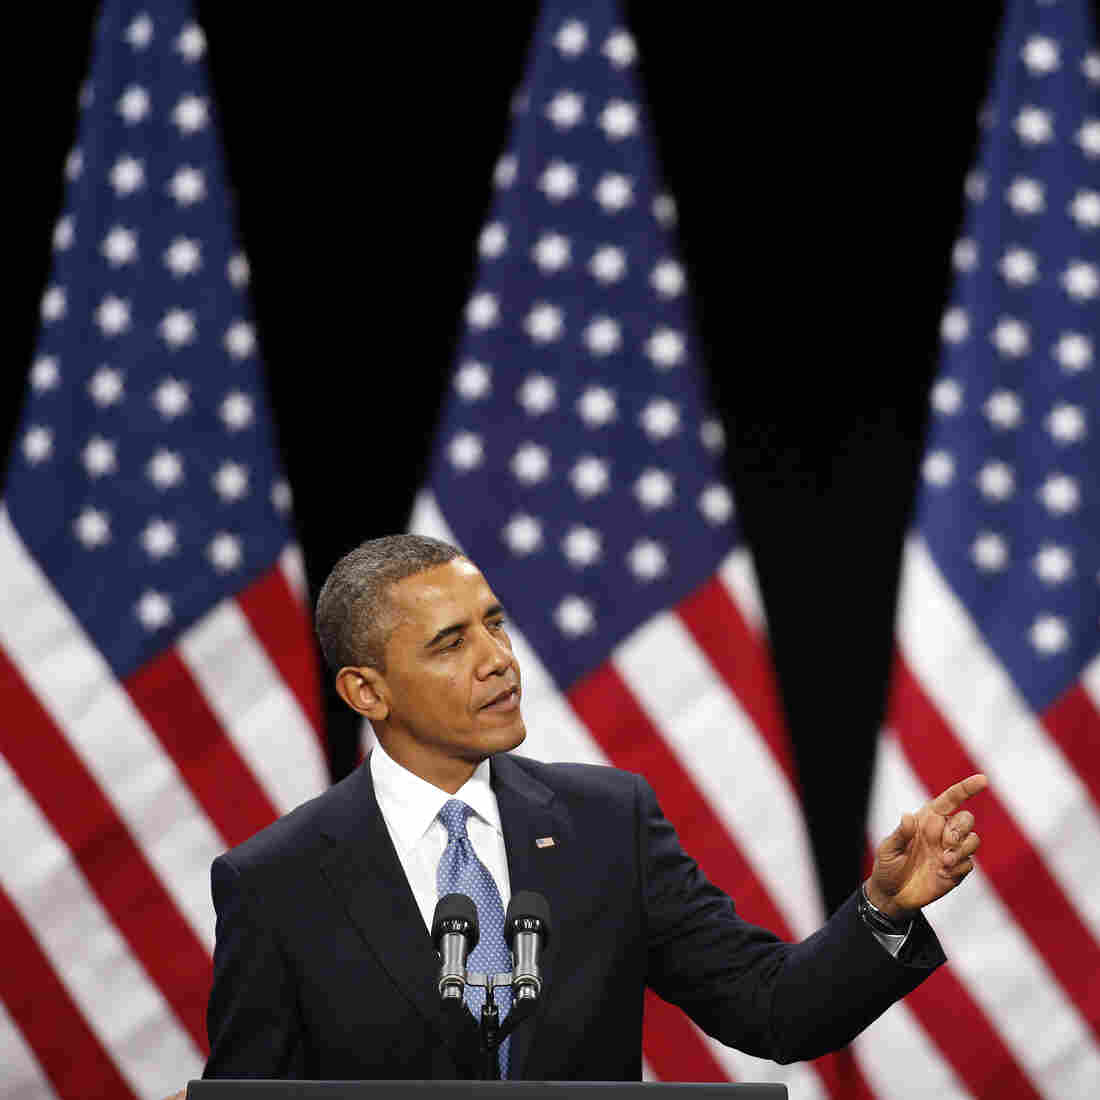 Obama Lays Out Immigration Plan But Avoids Thorny Issues